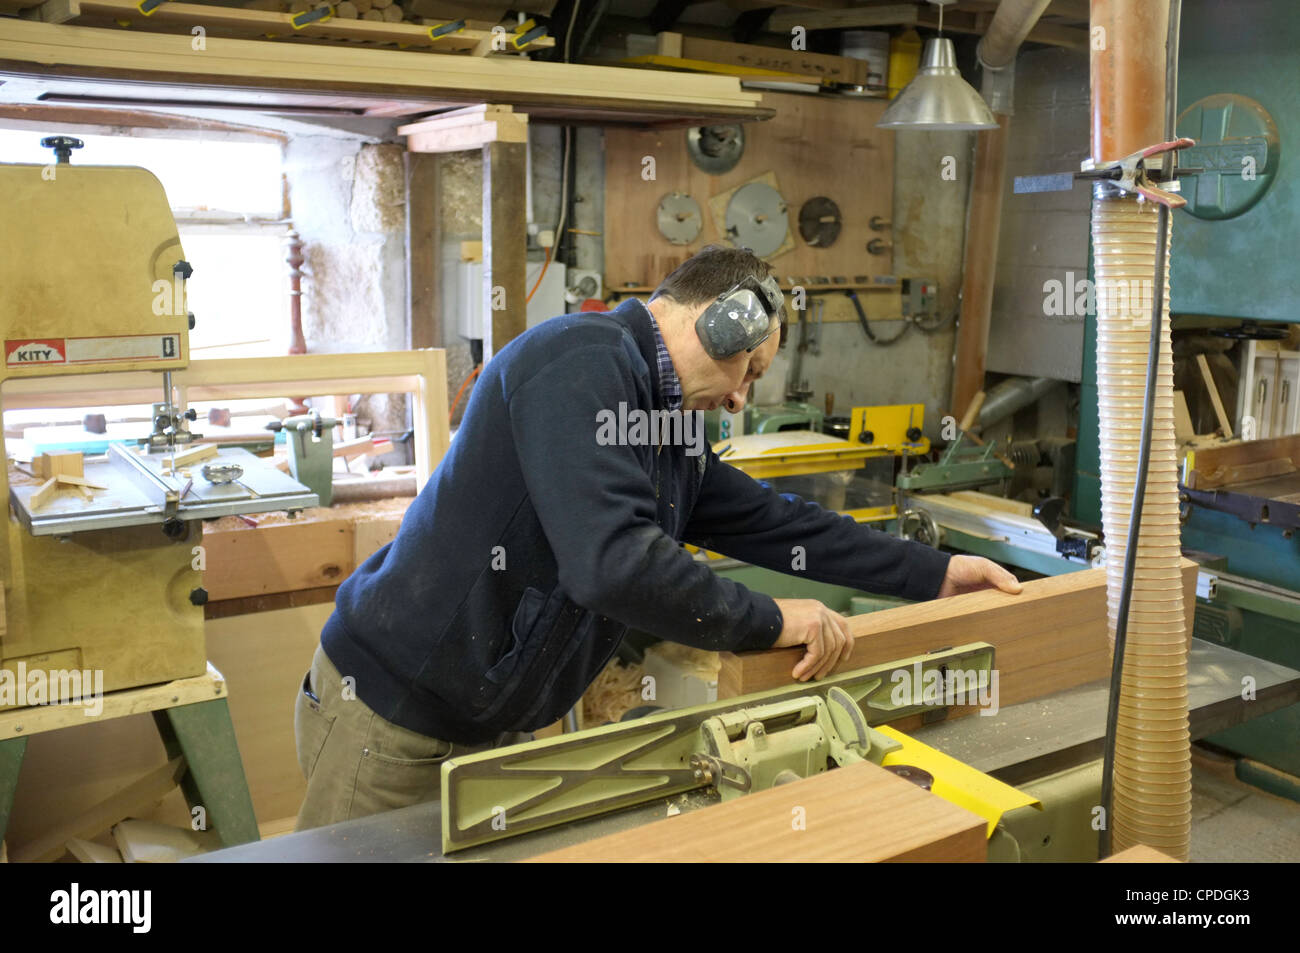 A carpenter in his workshop - Stock Image